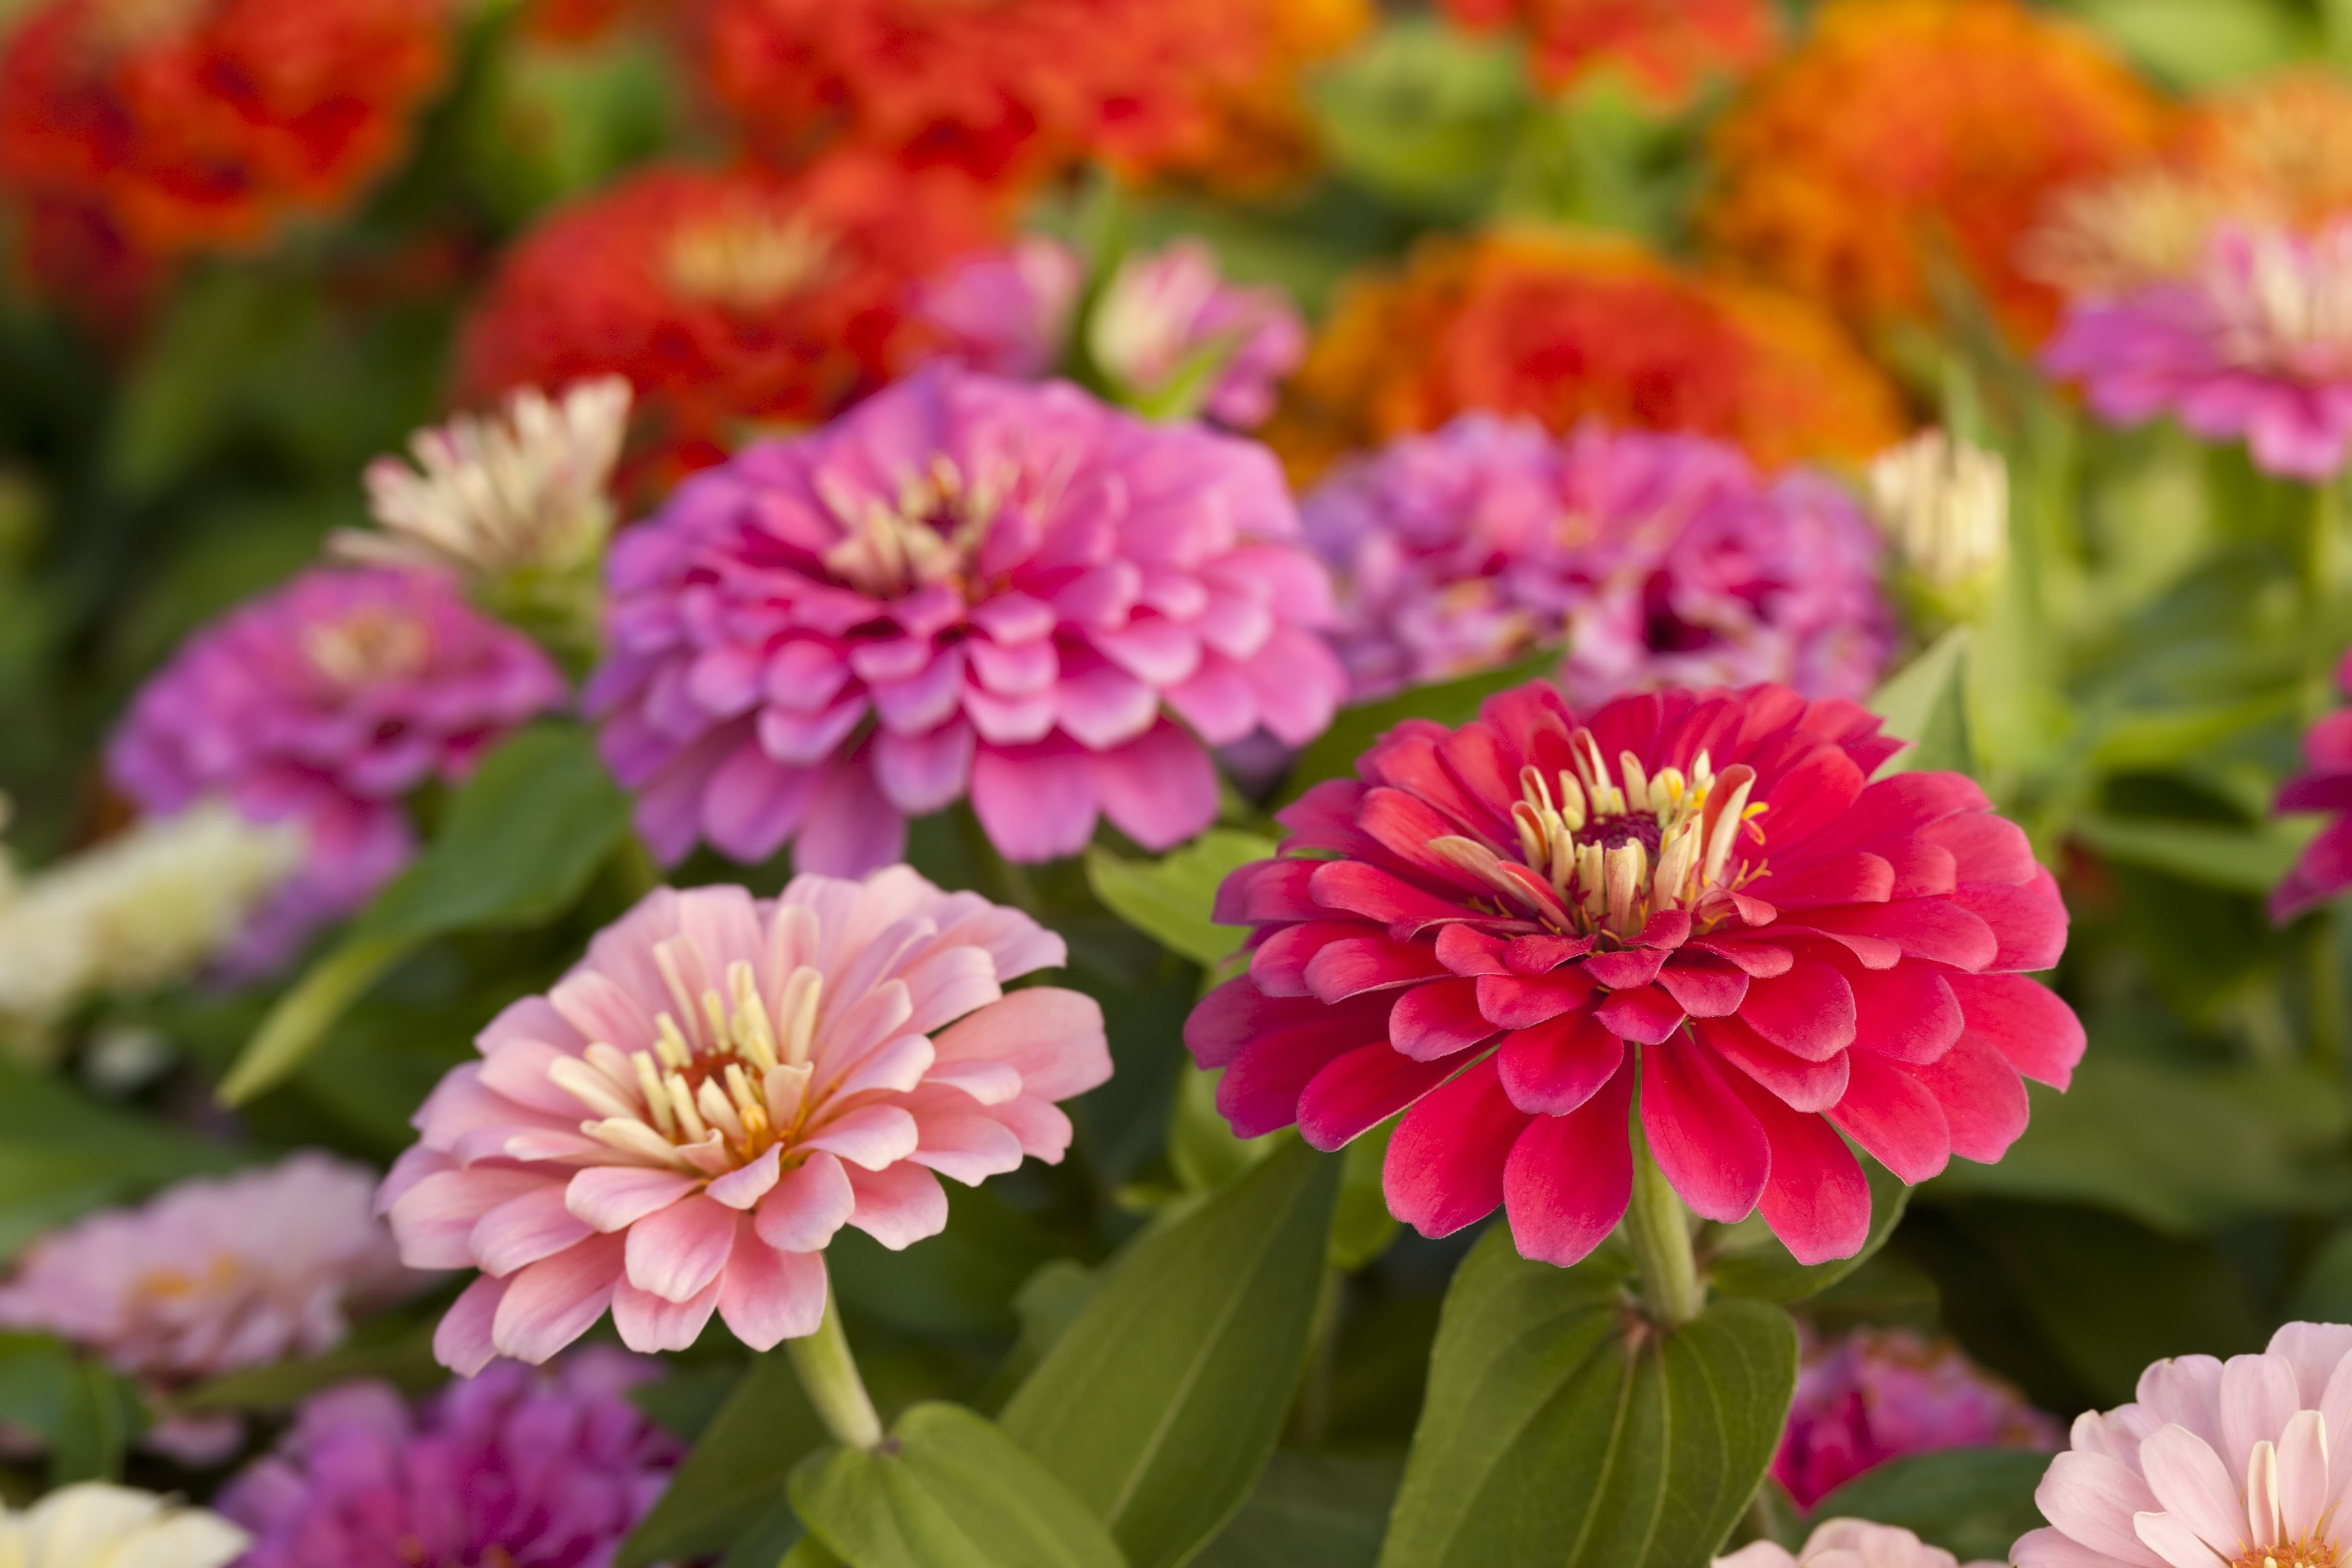 How to grow beautiful zinnia flowers harvesting and planting how to grow beautiful zinnia flowers harvesting and planting zinnia seeds izmirmasajfo